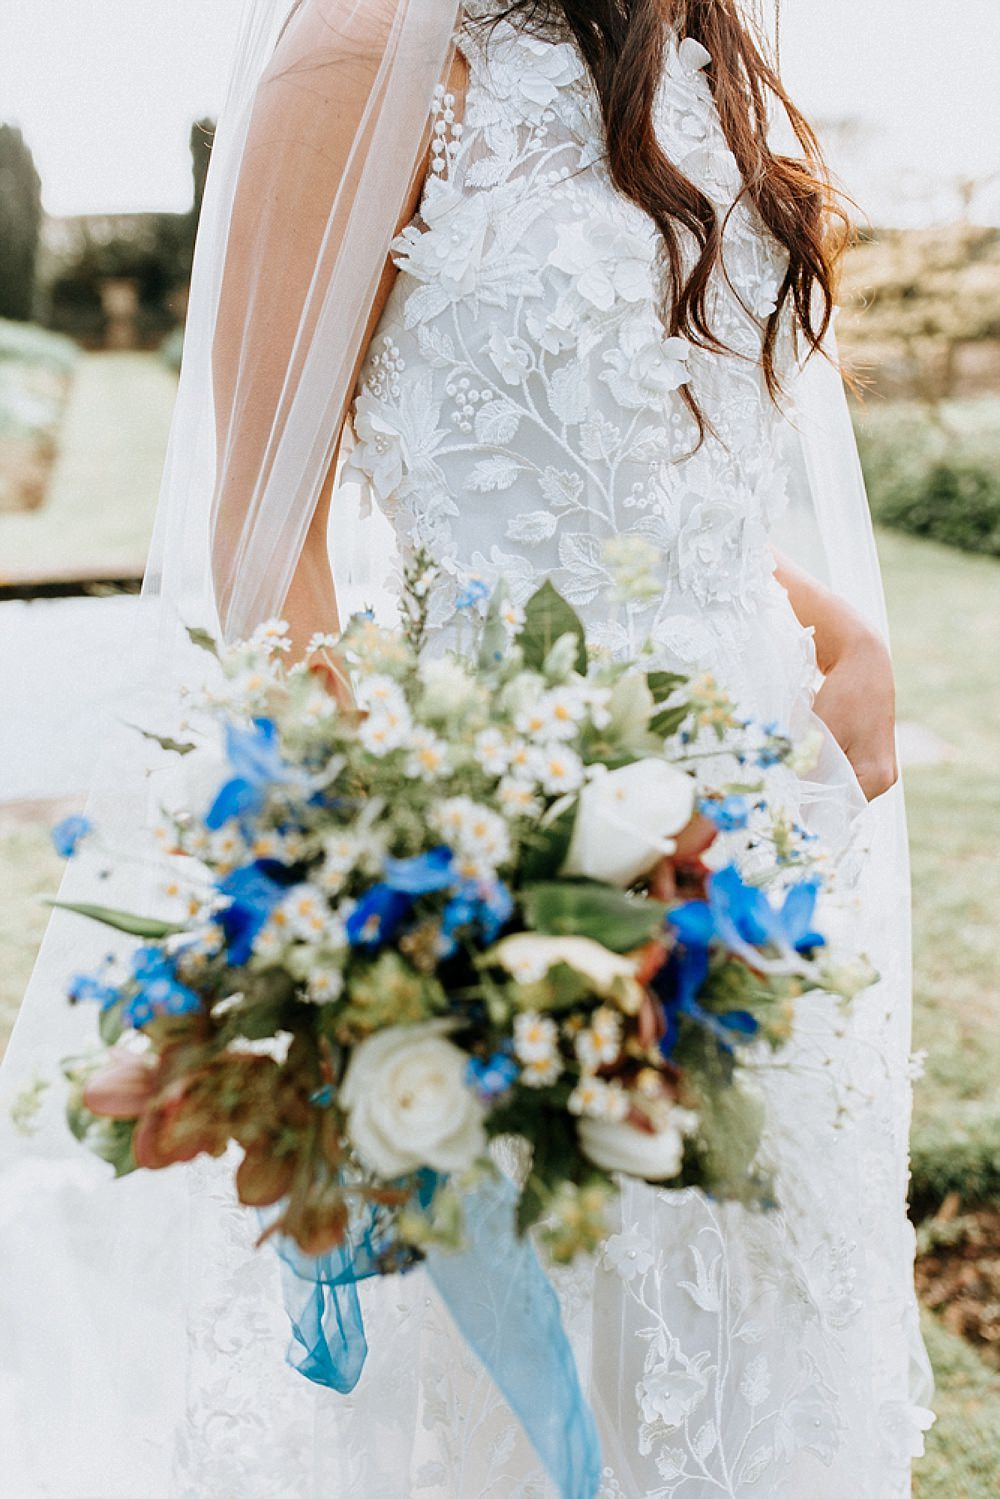 Dress Gown Bride Bridal Pronovias Flower Floral Applique Train Veil Blue Gold Wedding Ideas Ailsa Reeve Photography